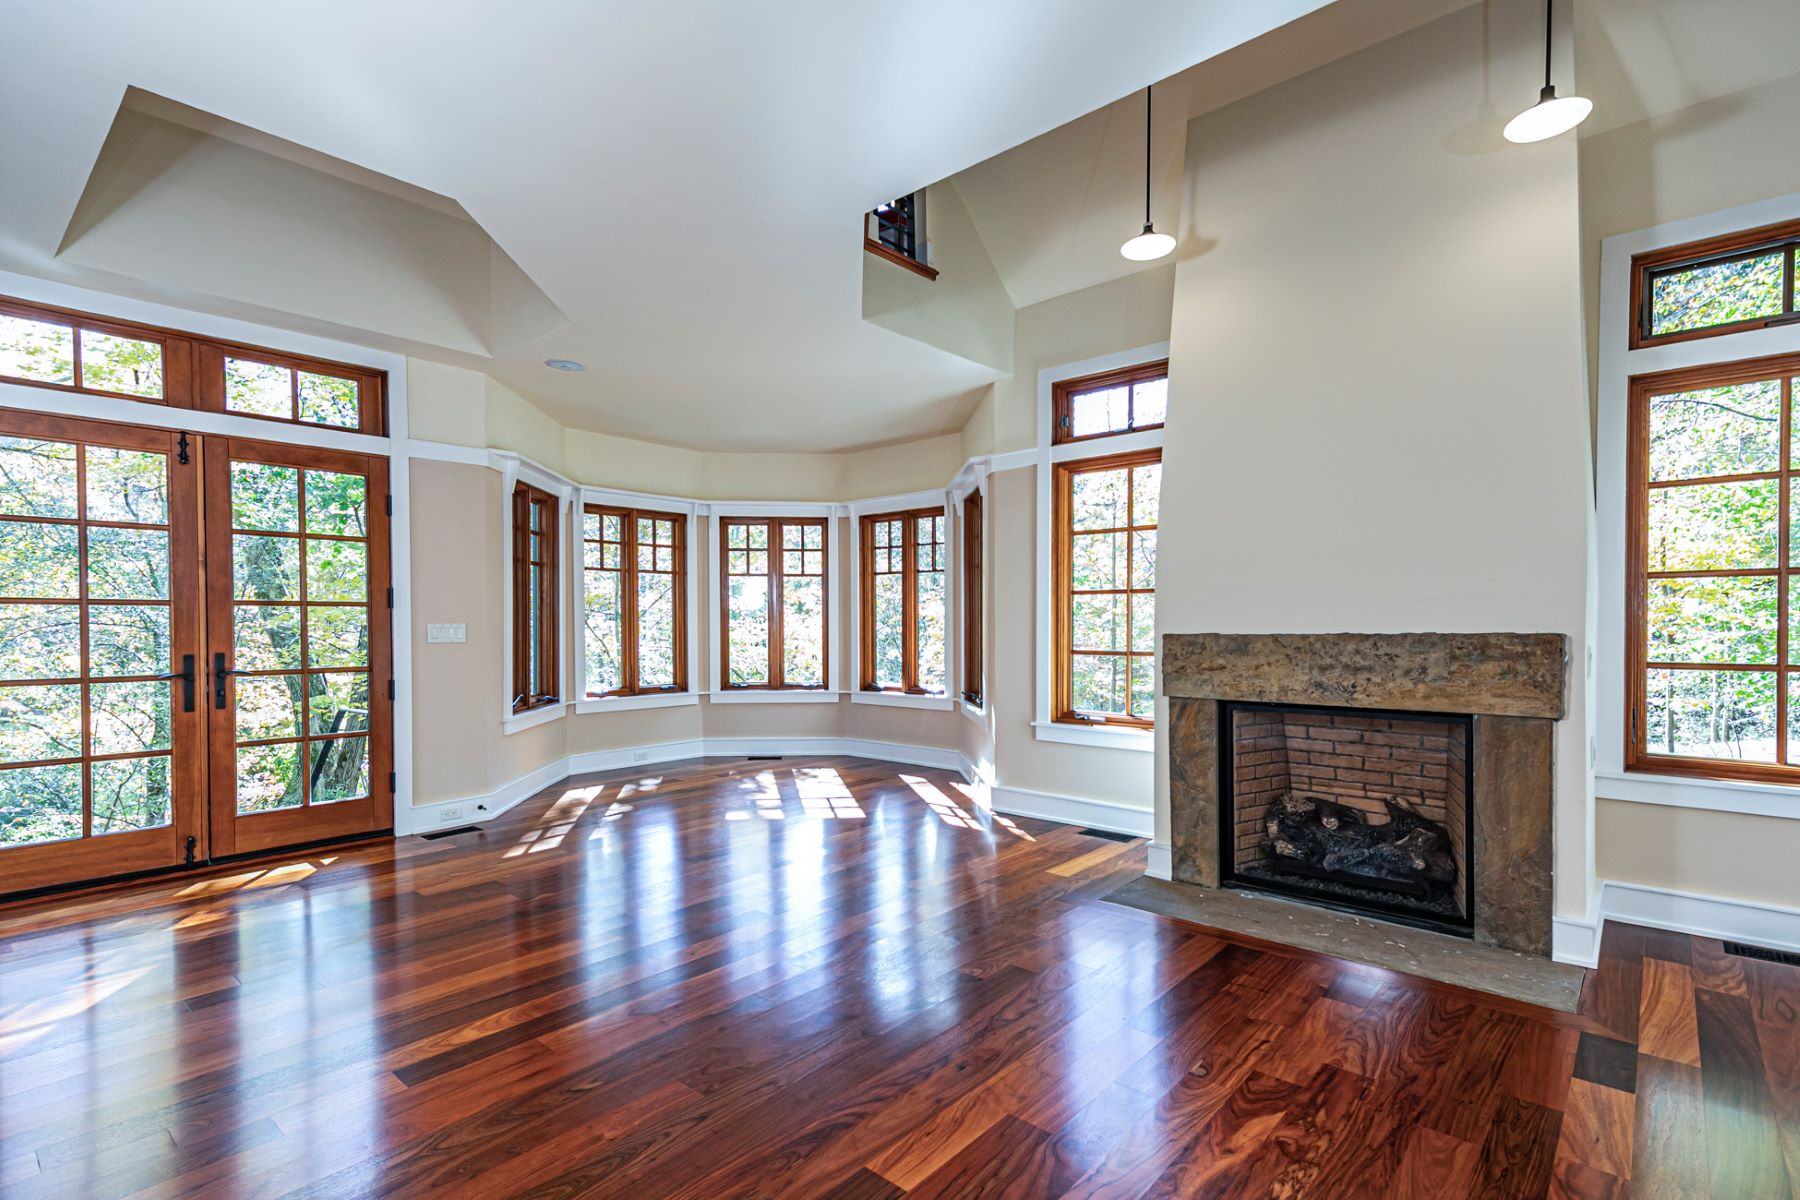 Additional photo for property listing at Luxury Craftsman Home Perched Above Stoney Brook 37 Stoney Brook Lane, Princeton, New Jersey 08540 United States